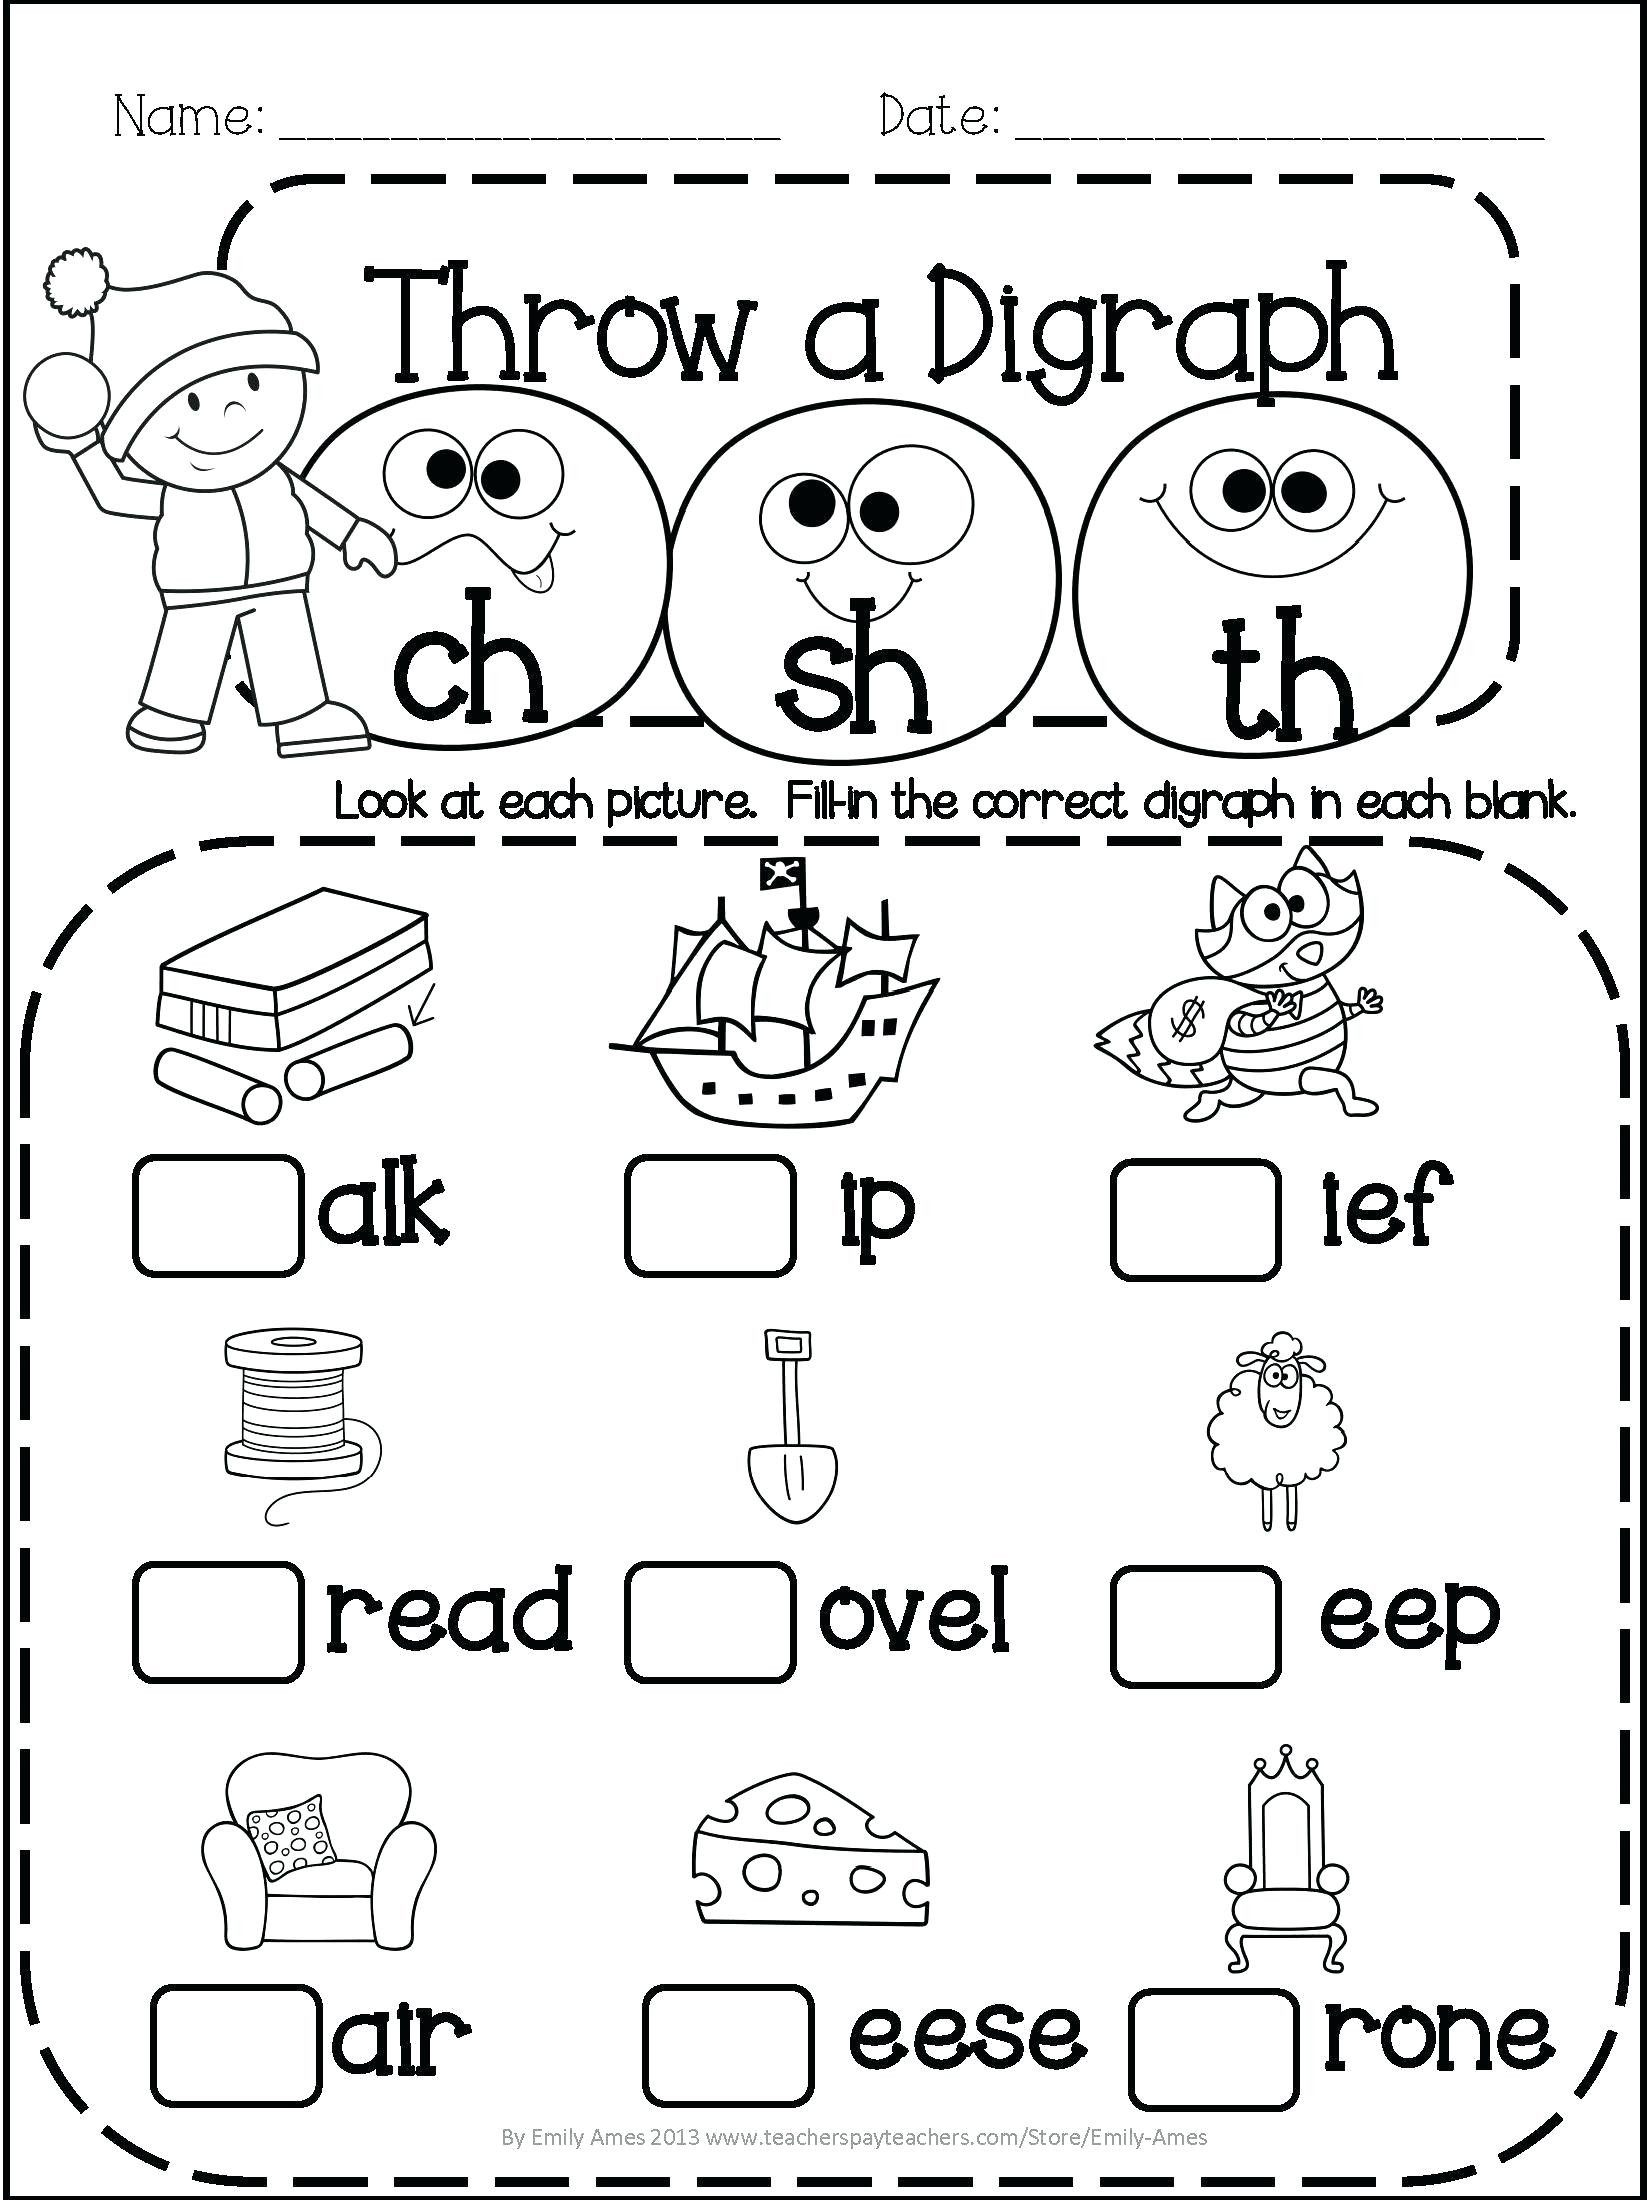 Second Grade Science Worksheets Free Math Worksheet 40 Reading Prehension Games for 2nd